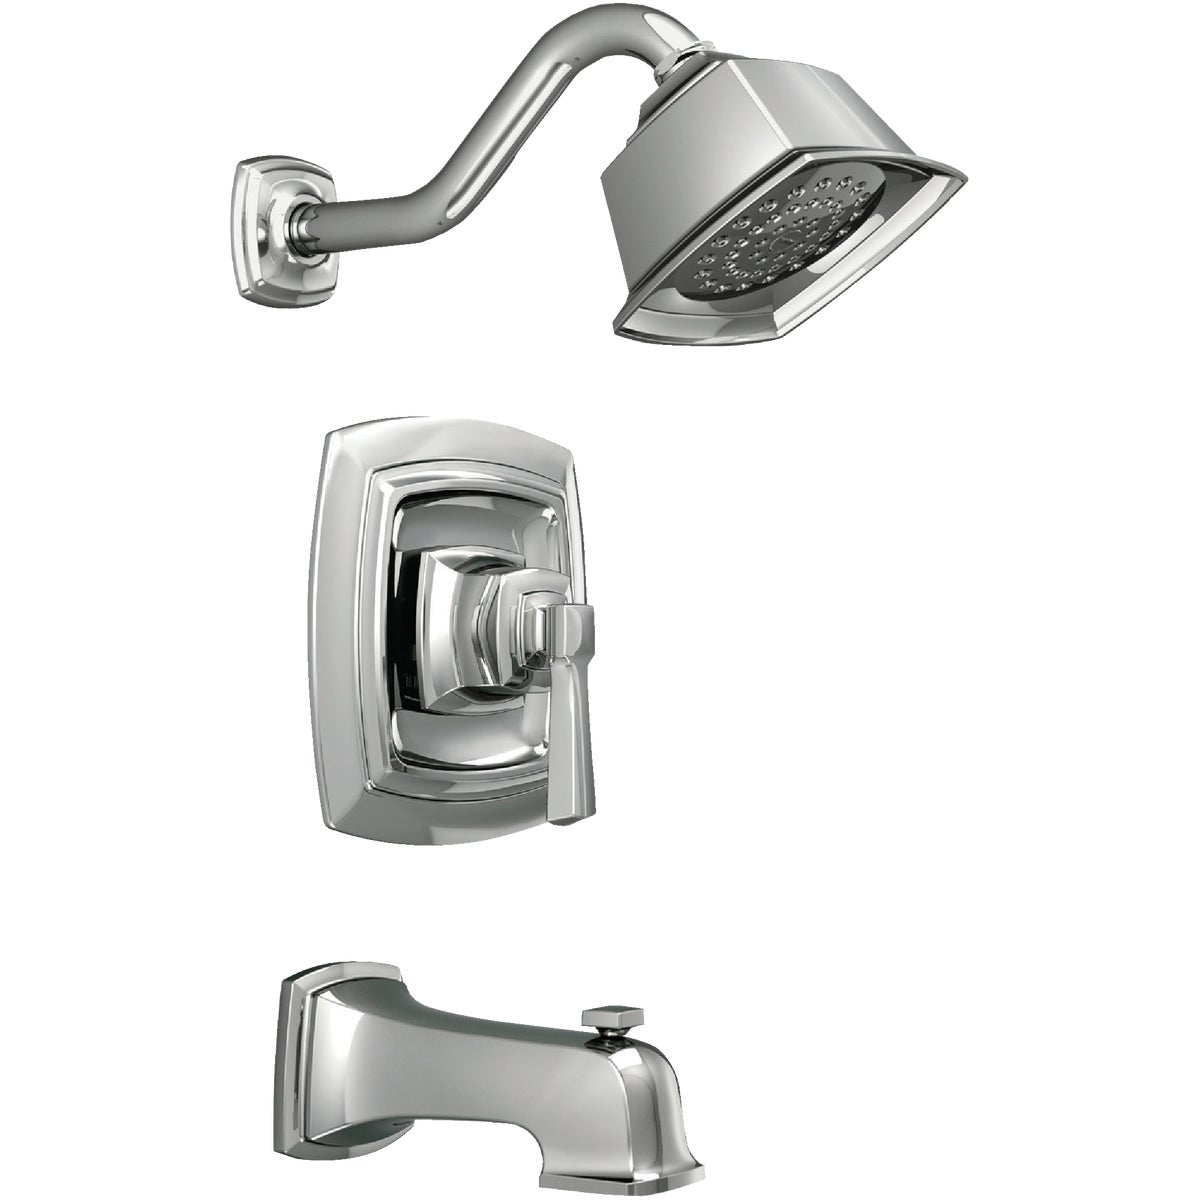 1H CHROME T/S FAUCET - 82830EP by Moen Inc